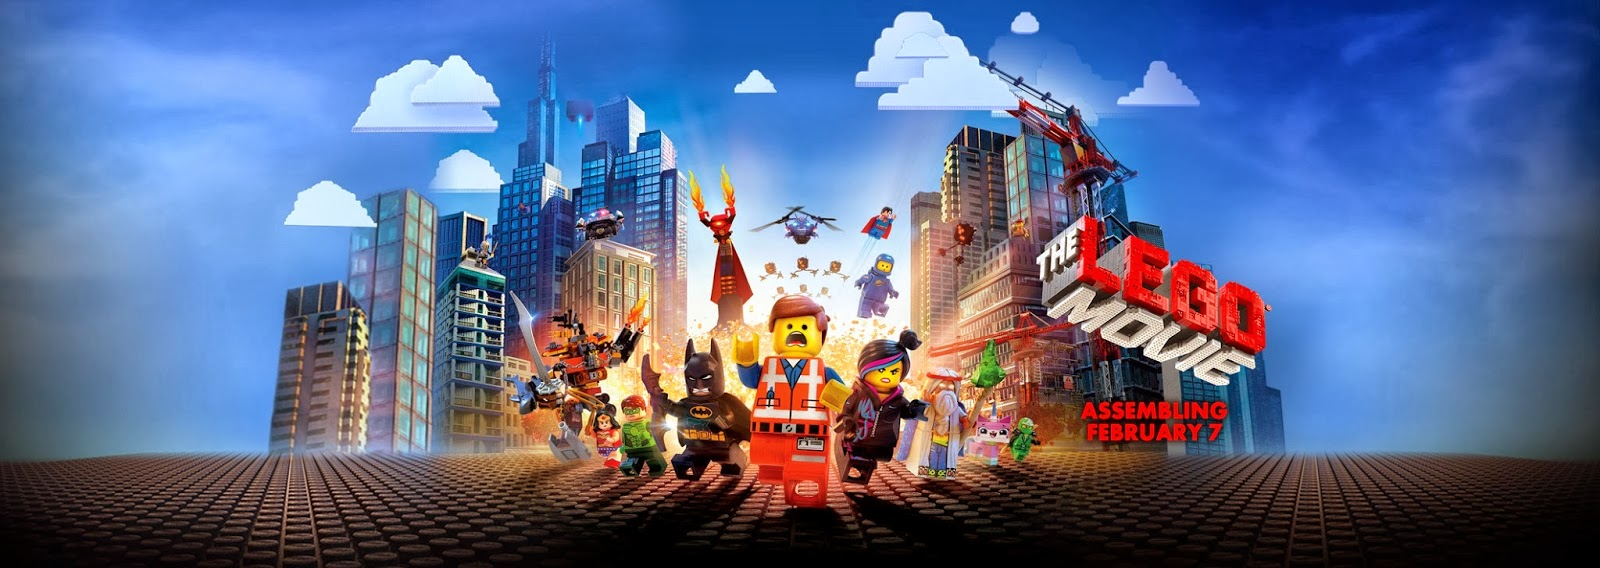 The Lego Movie: Final Preview